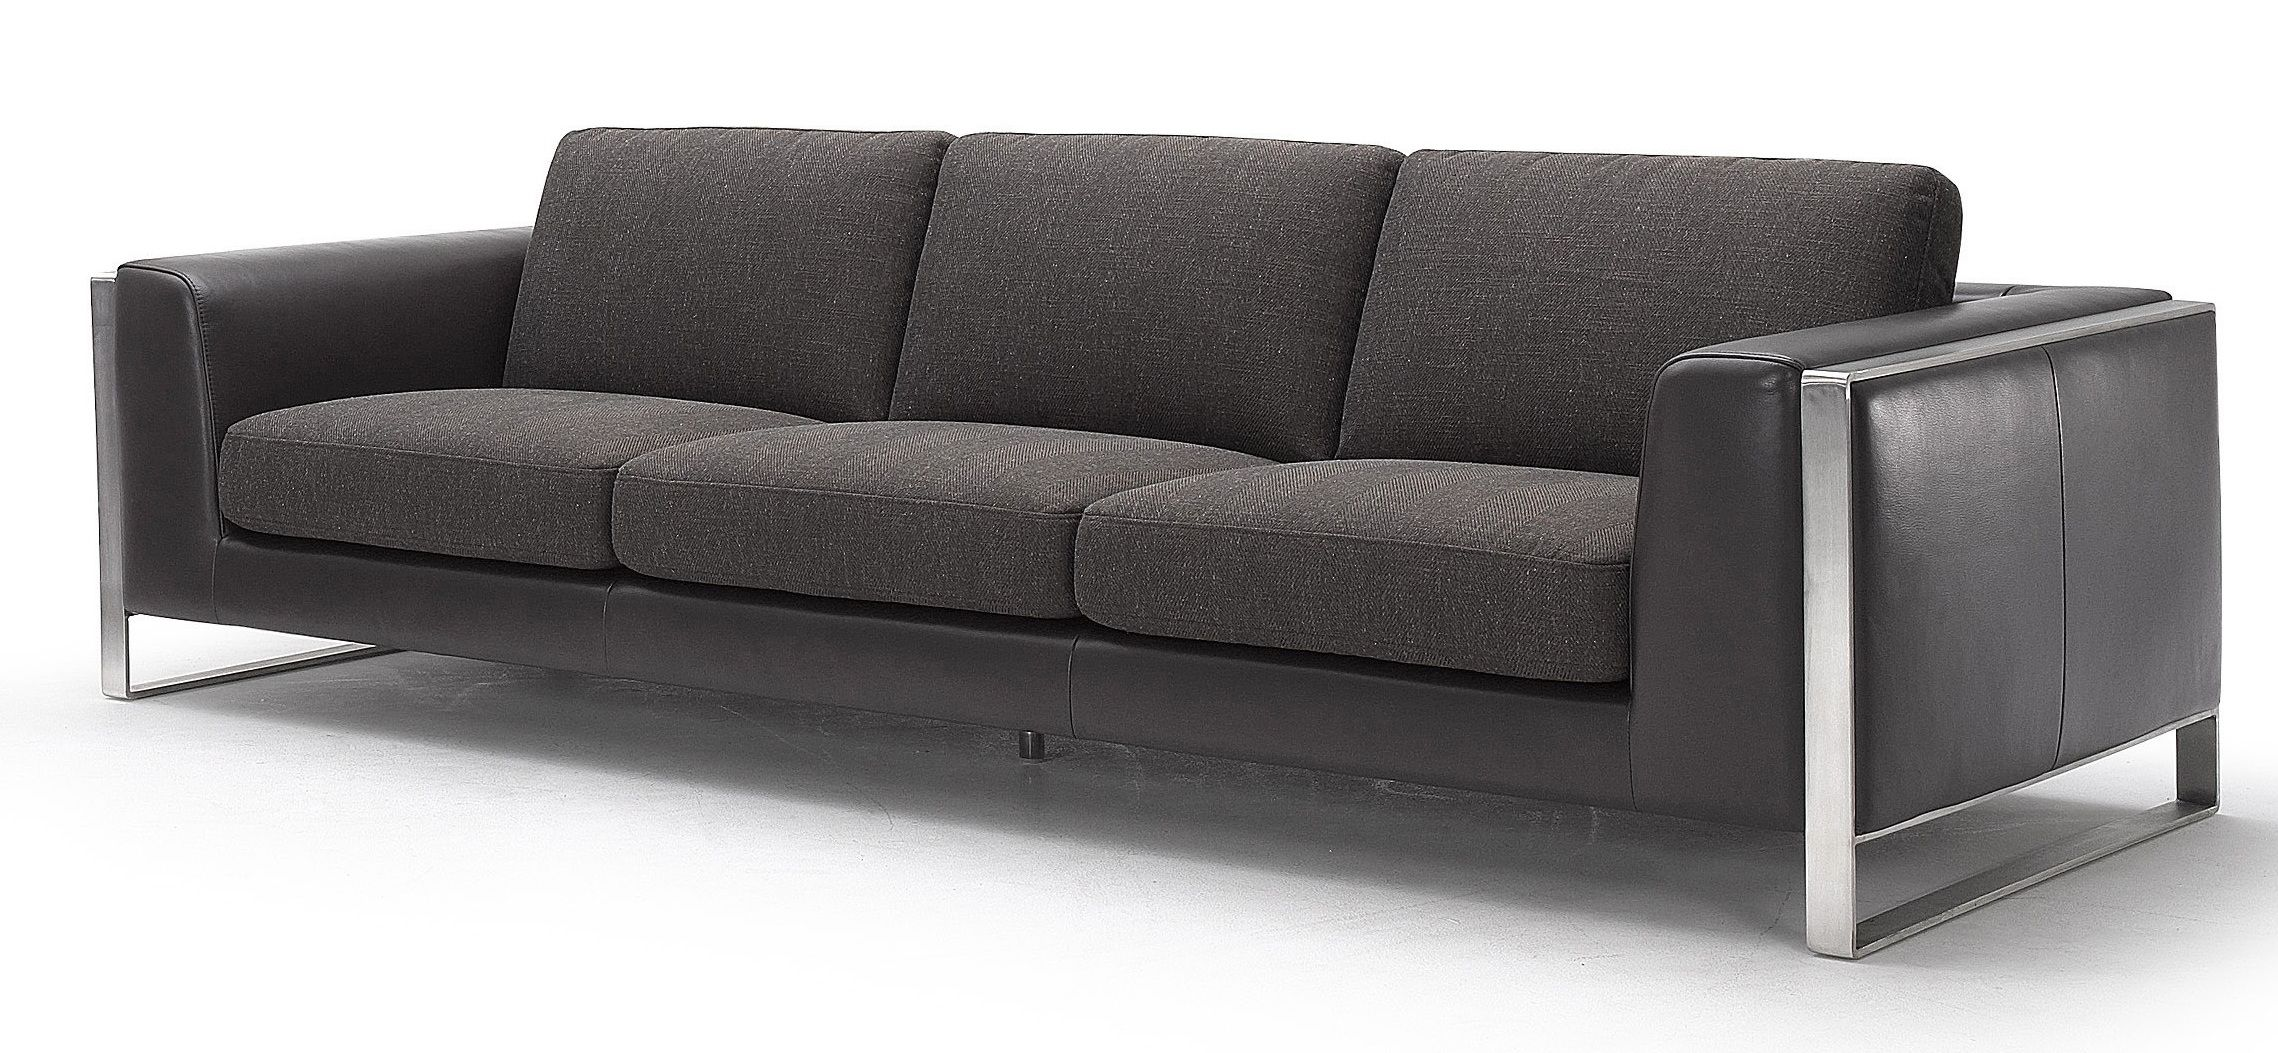 Home Furniture Improvement With Contemporary Sofa Huz